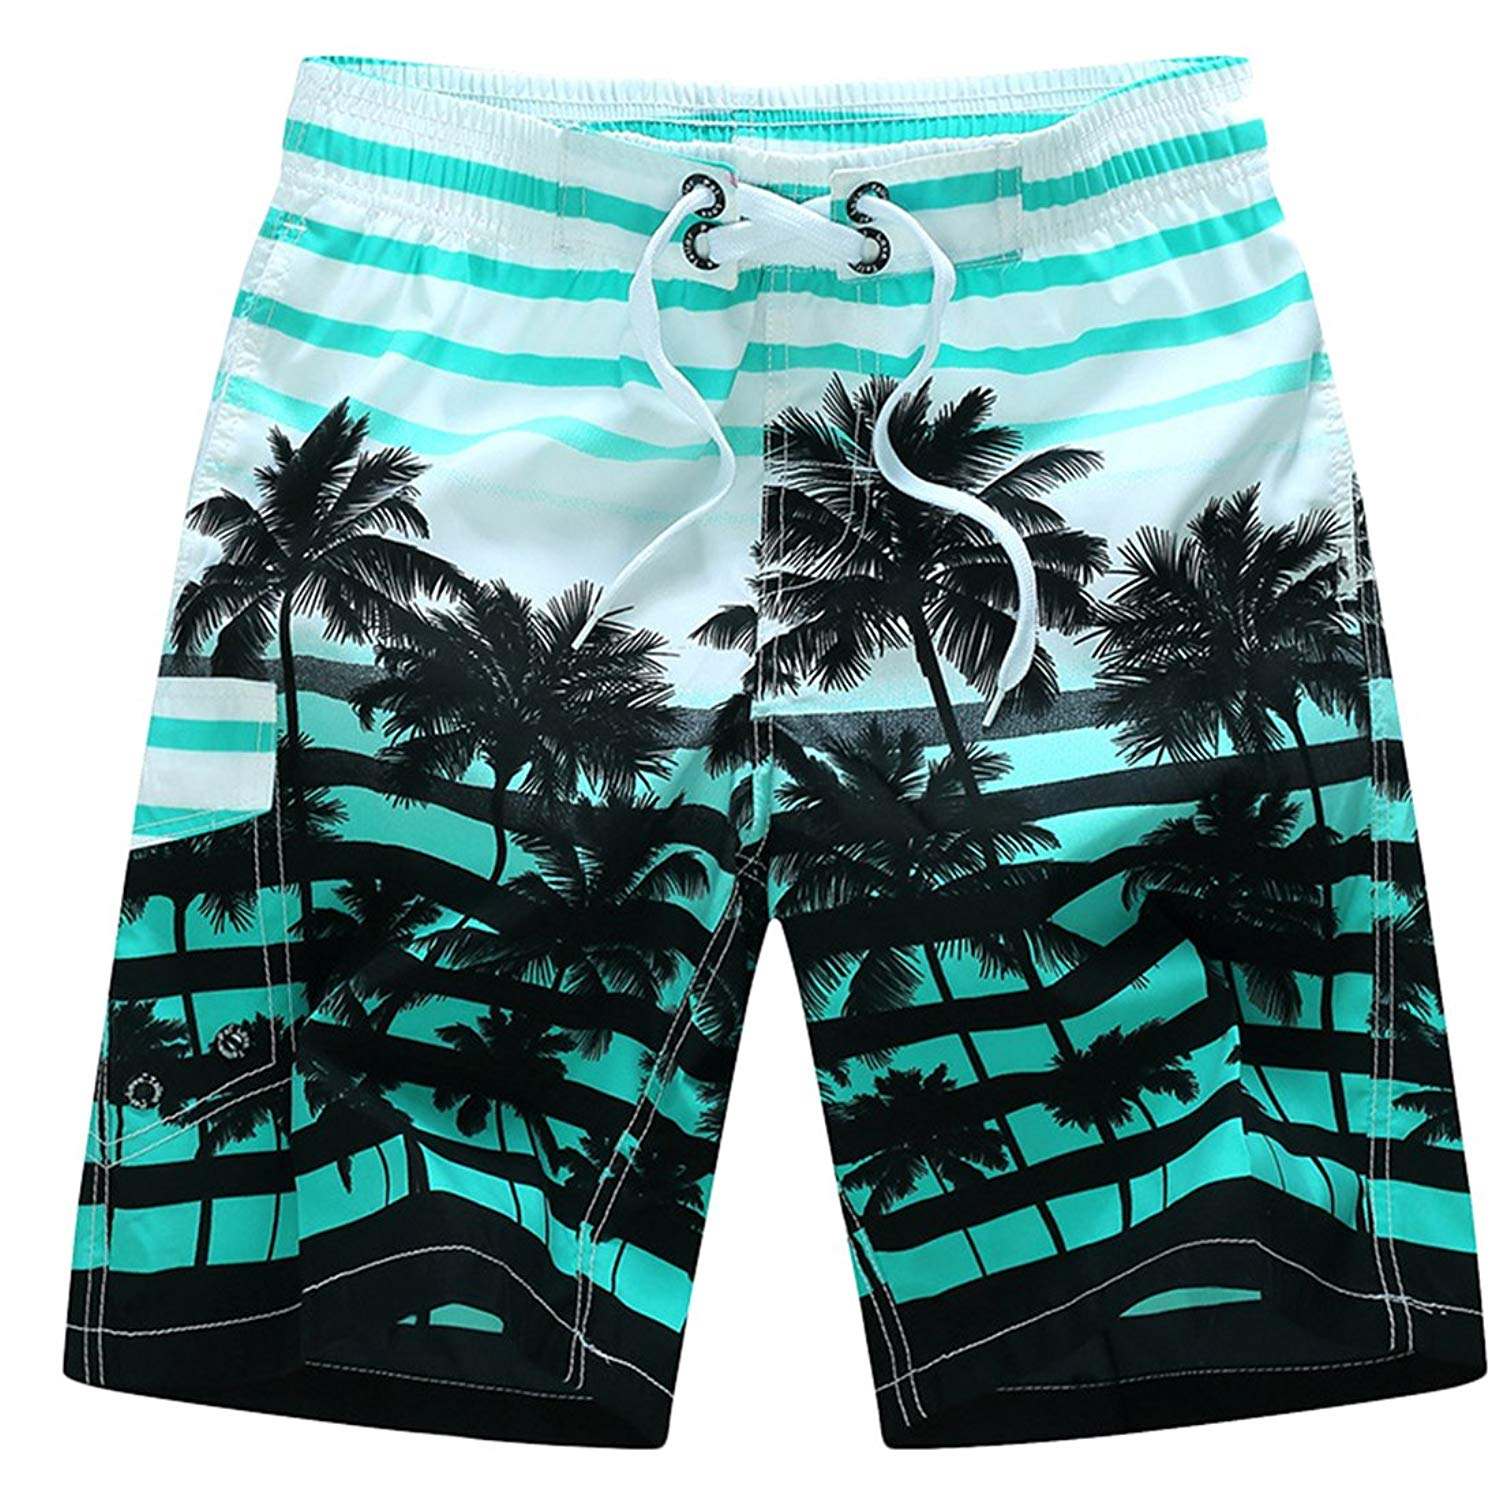 881e683458 Get Quotations · Puedo Summer Shorts, Men Quick Dry Swim Trunks Cargo Water  Shorts with Mesh Lining Casual